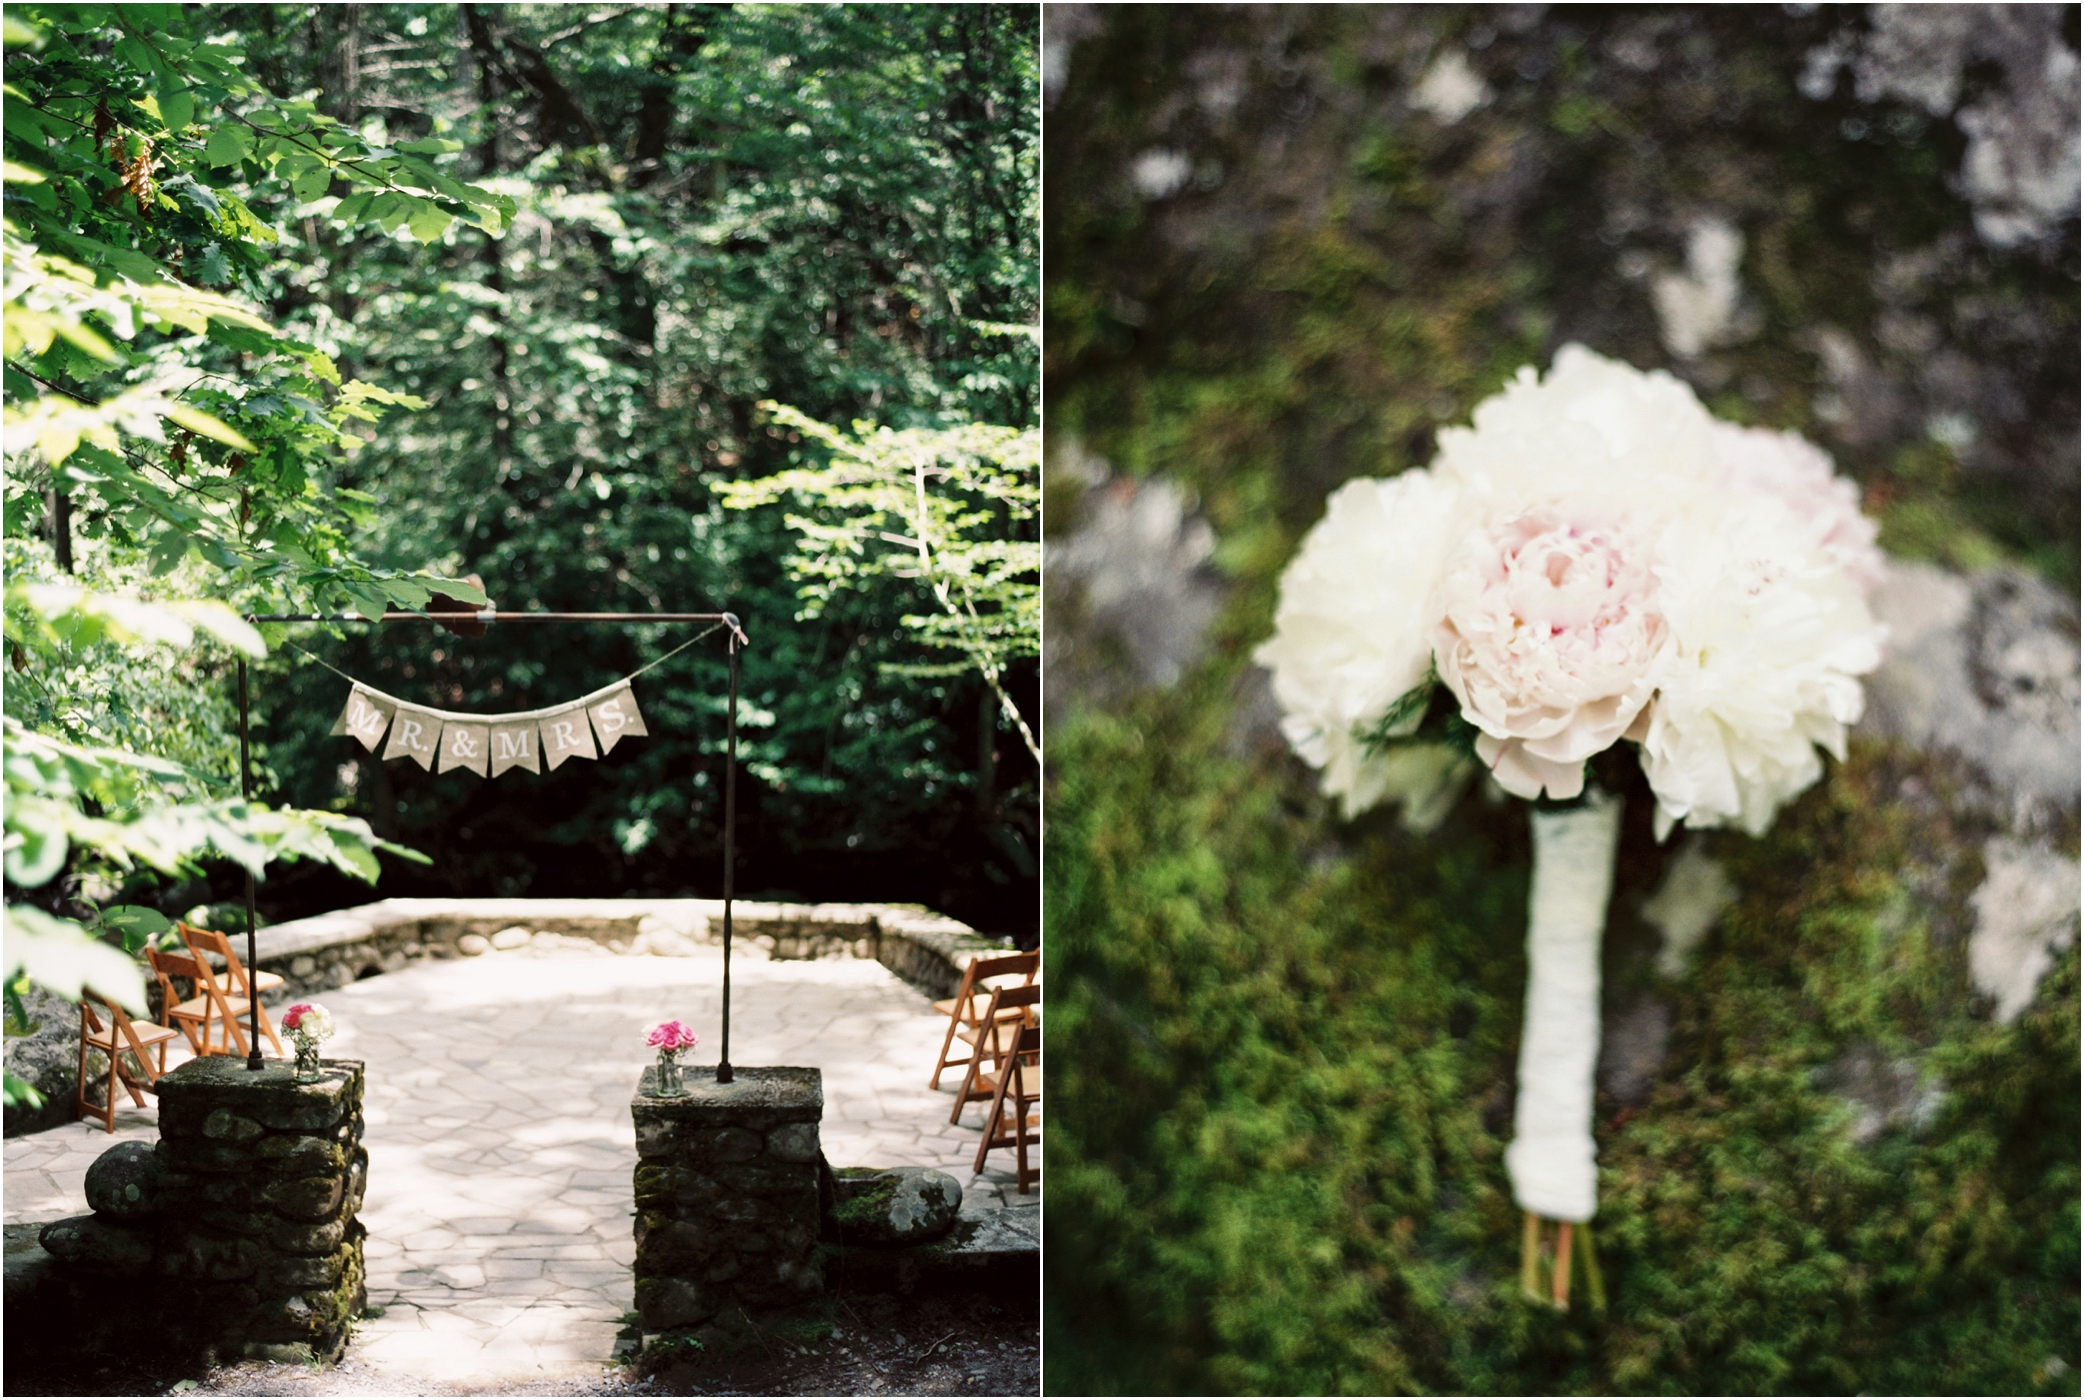 Enjoy This Spence Cabin Wedding And Reception At The Appalachian